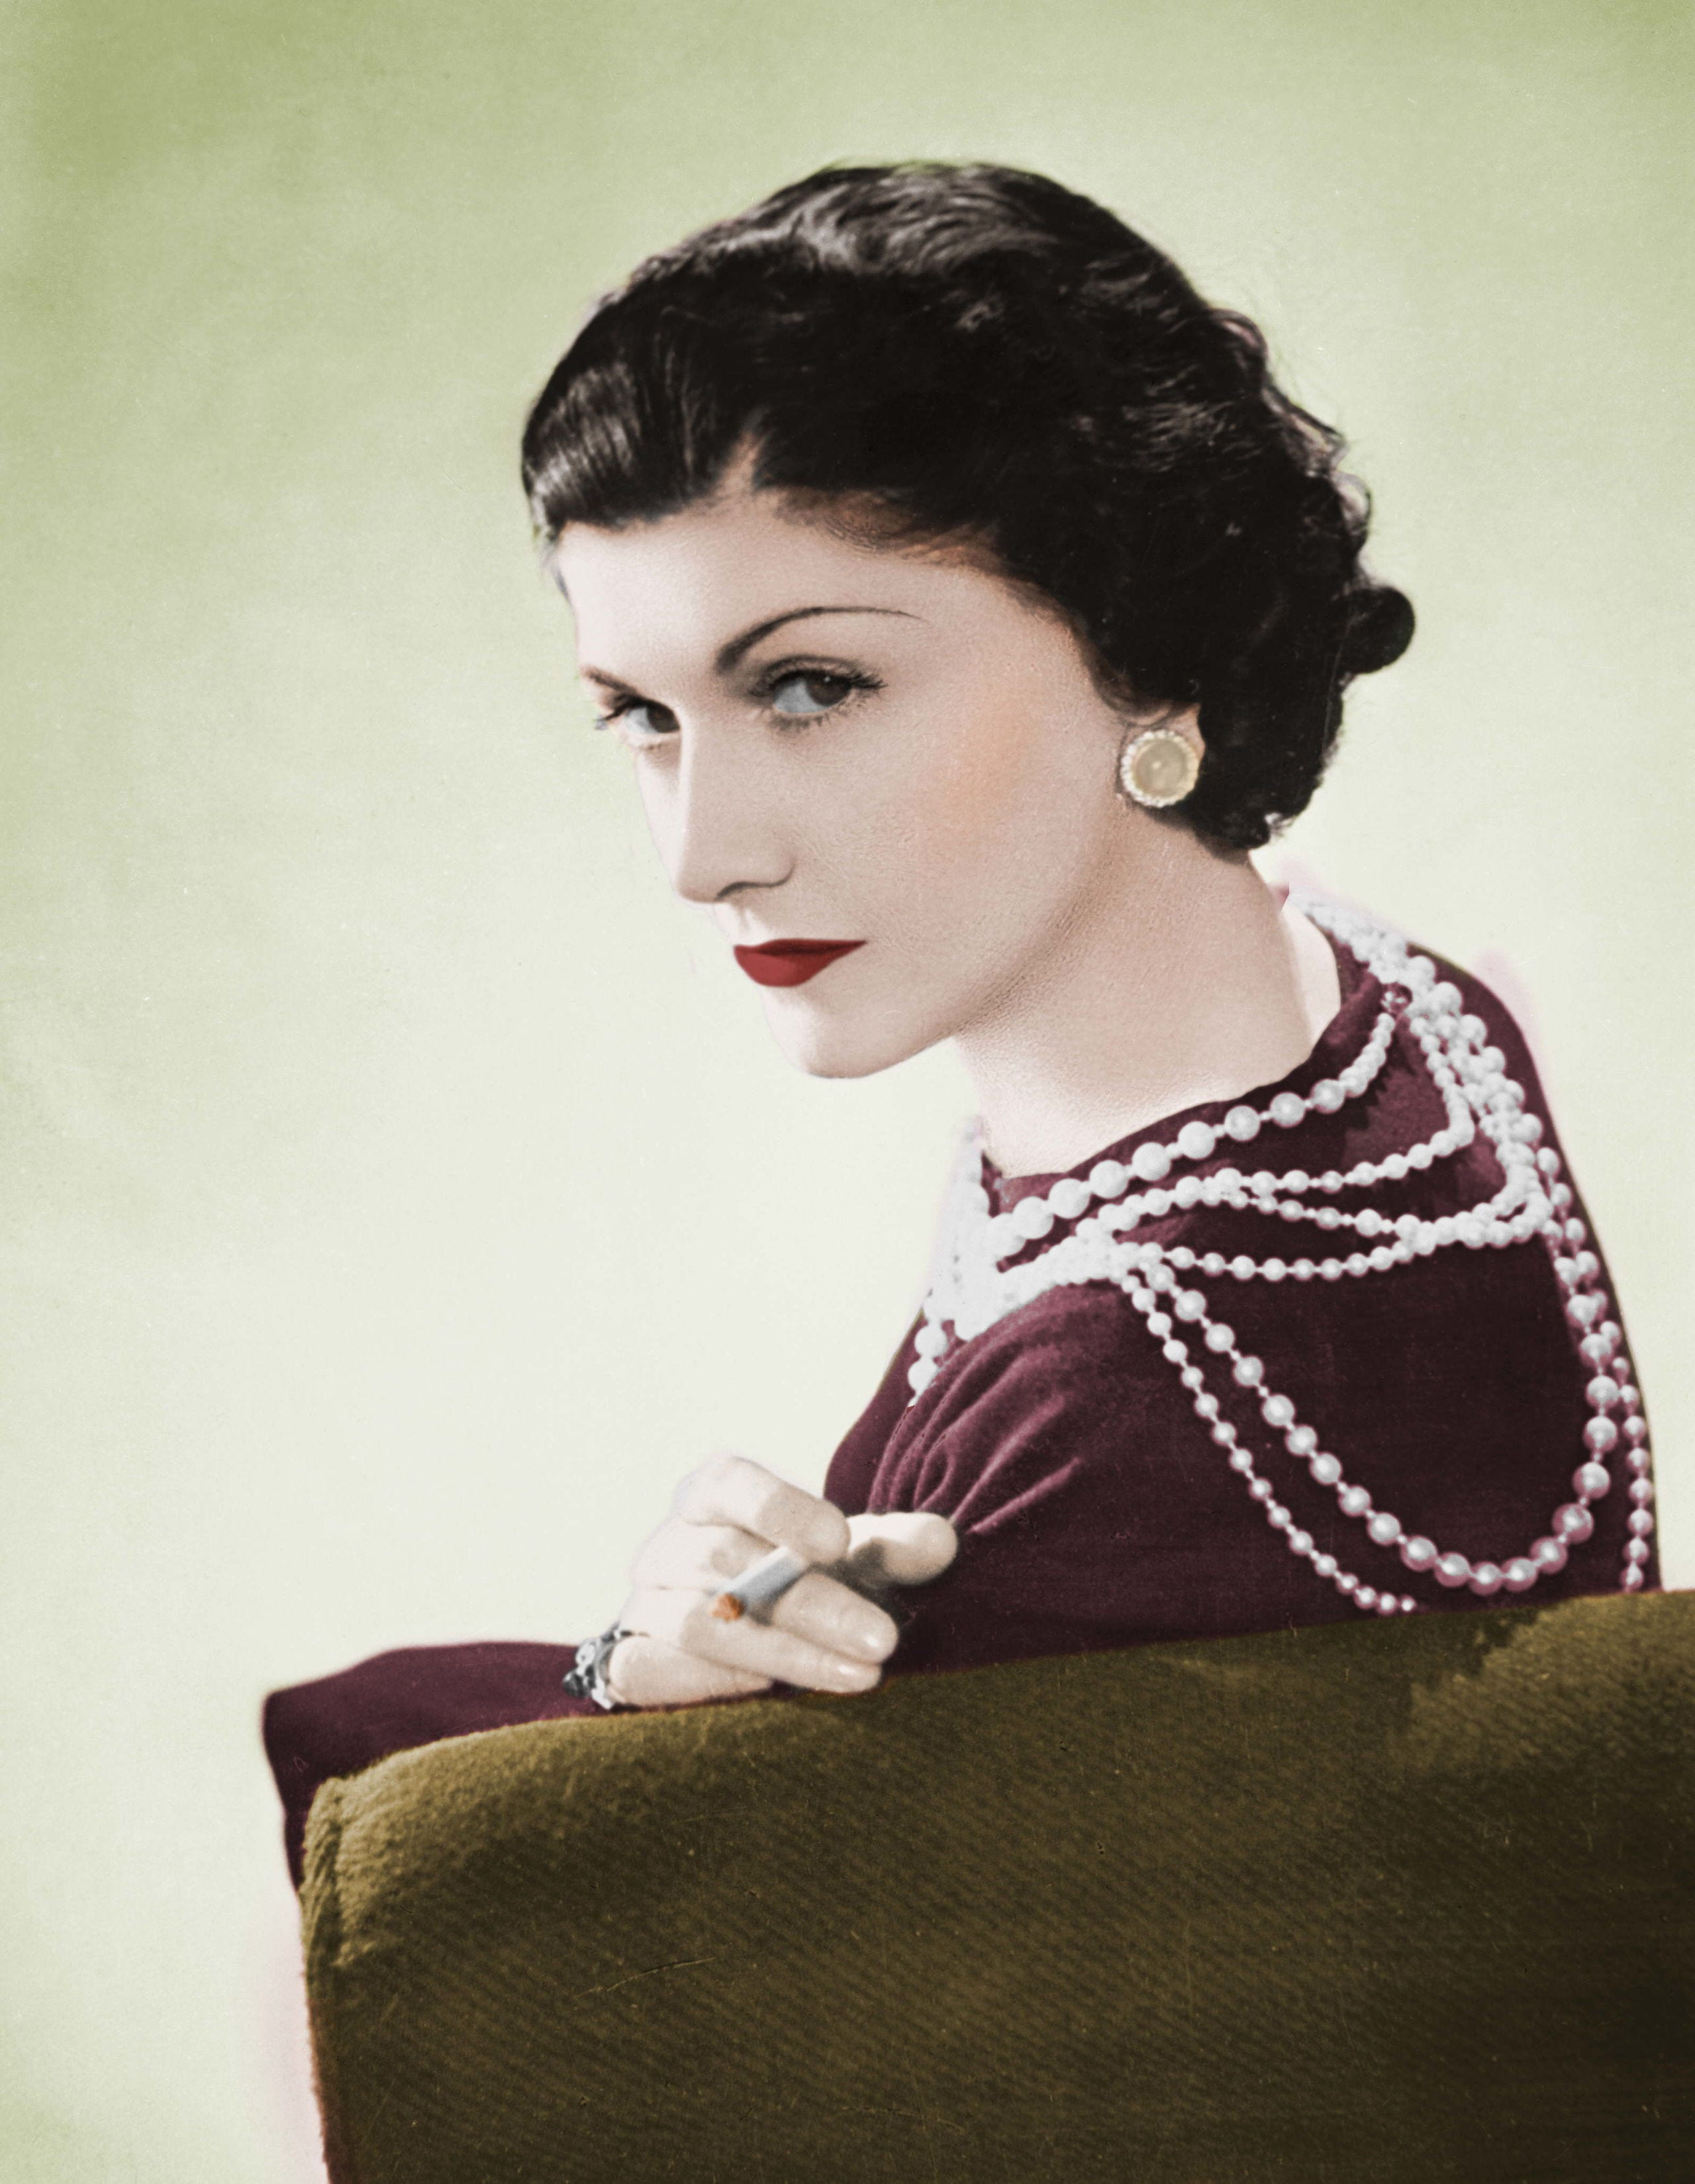 Coco Chanel's Pearls